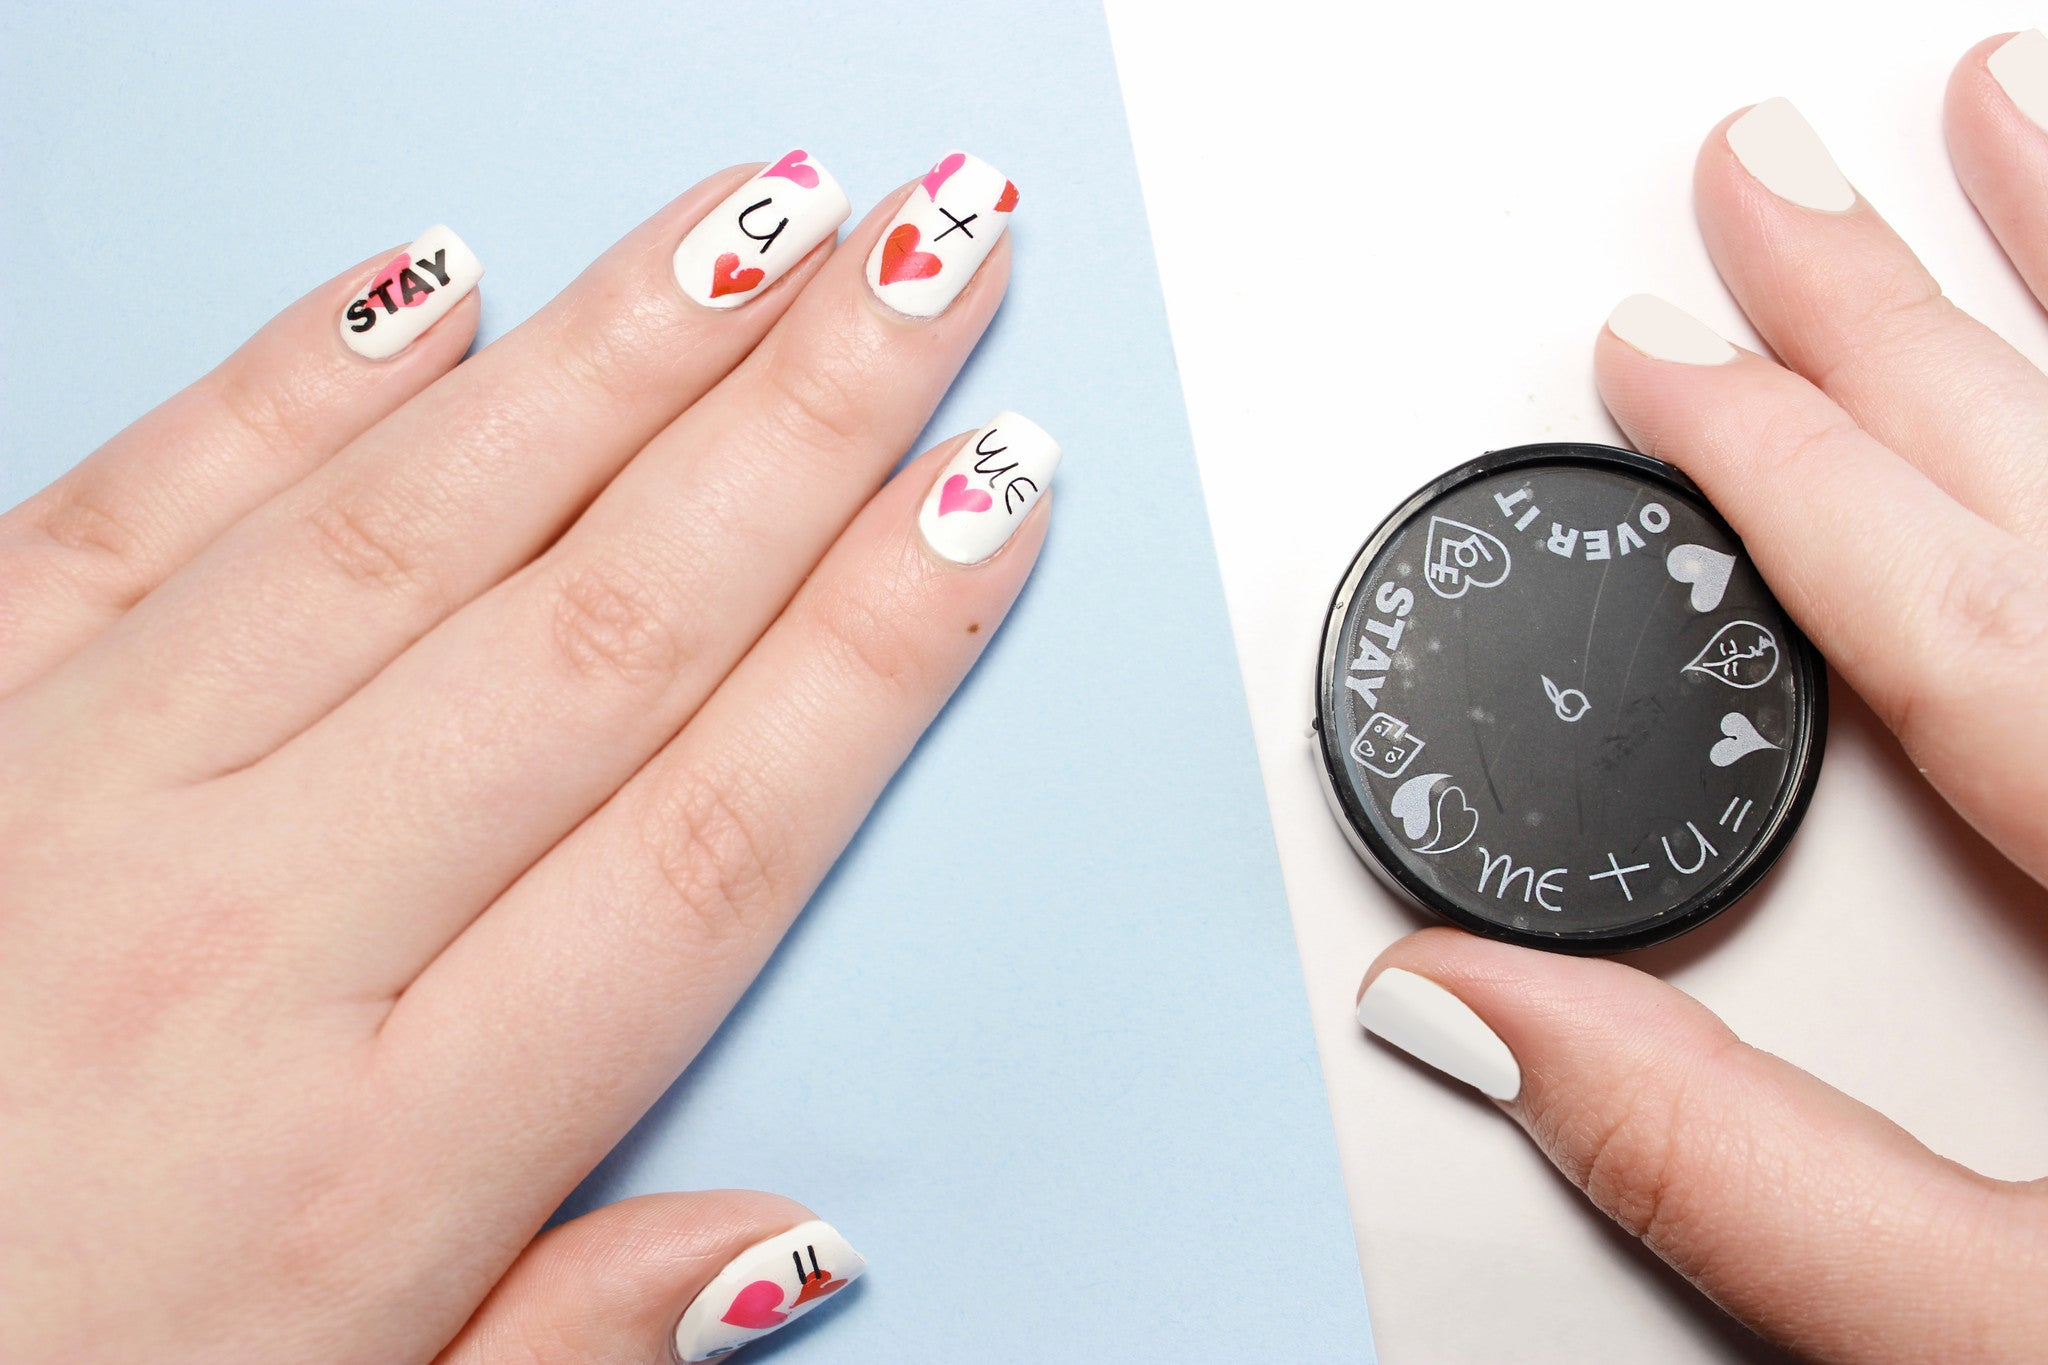 All about love nail art stamp apharsec all about love nail art stamp prinsesfo Image collections